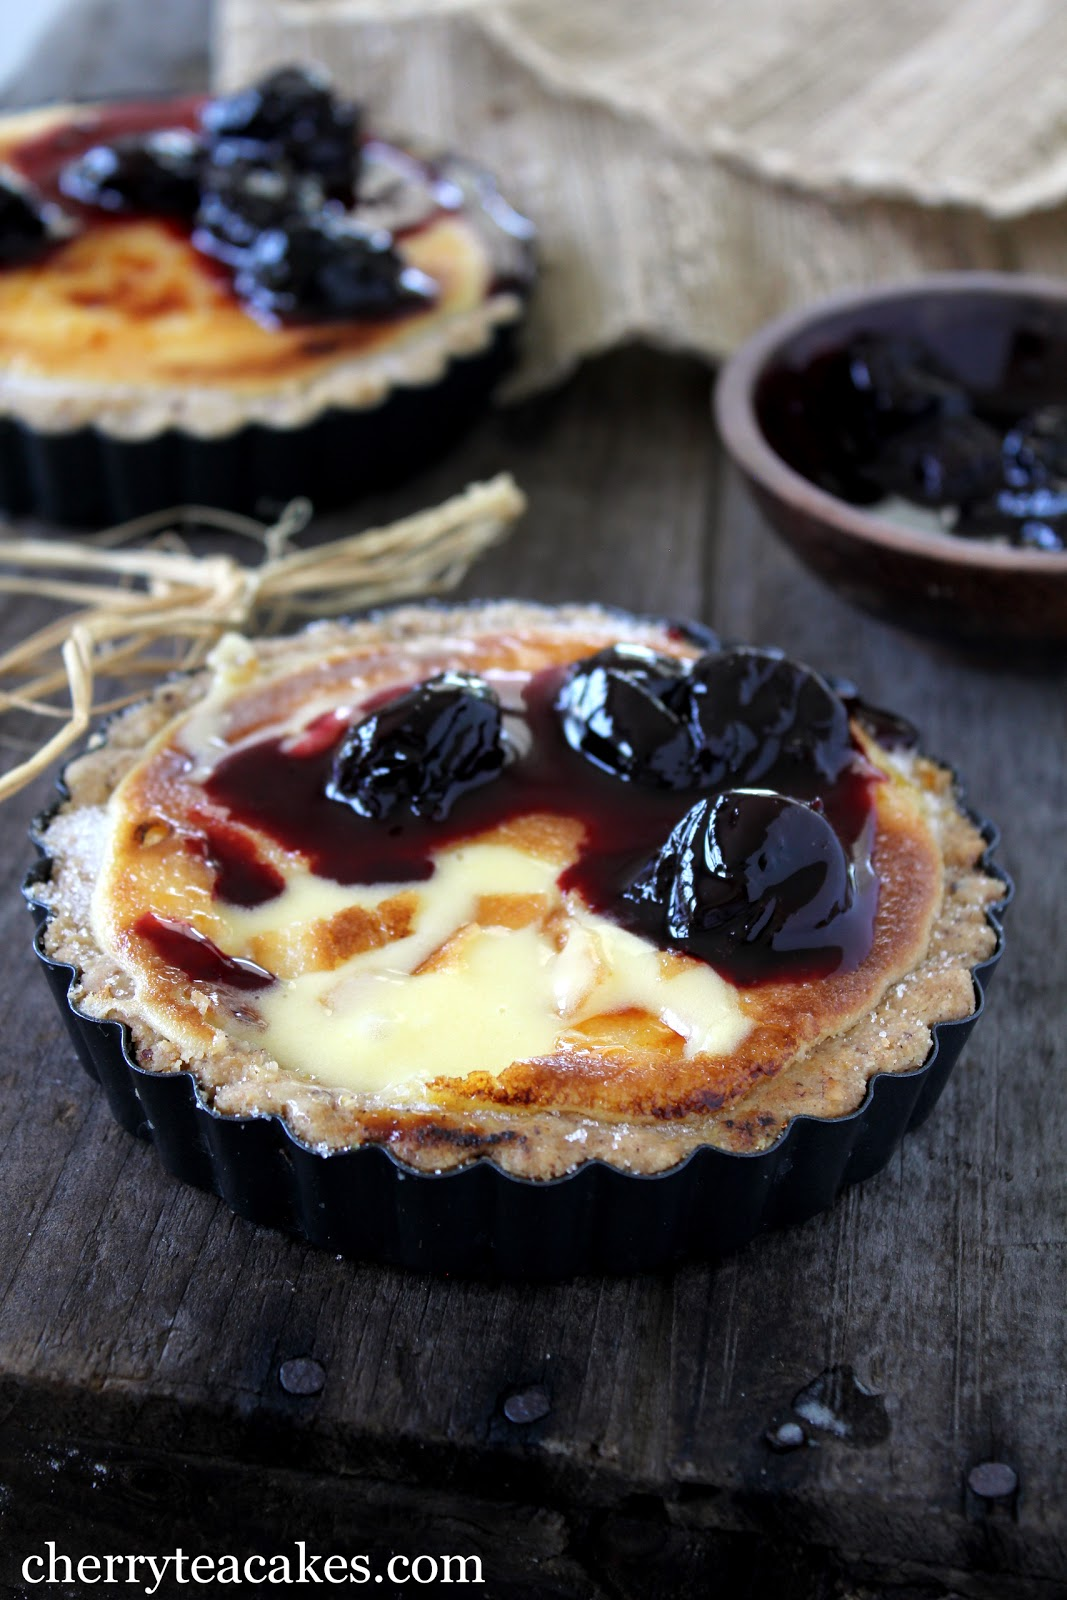 Cherry Tea Cakes: Lemon Mascarpone Brulee with Cherry Compote